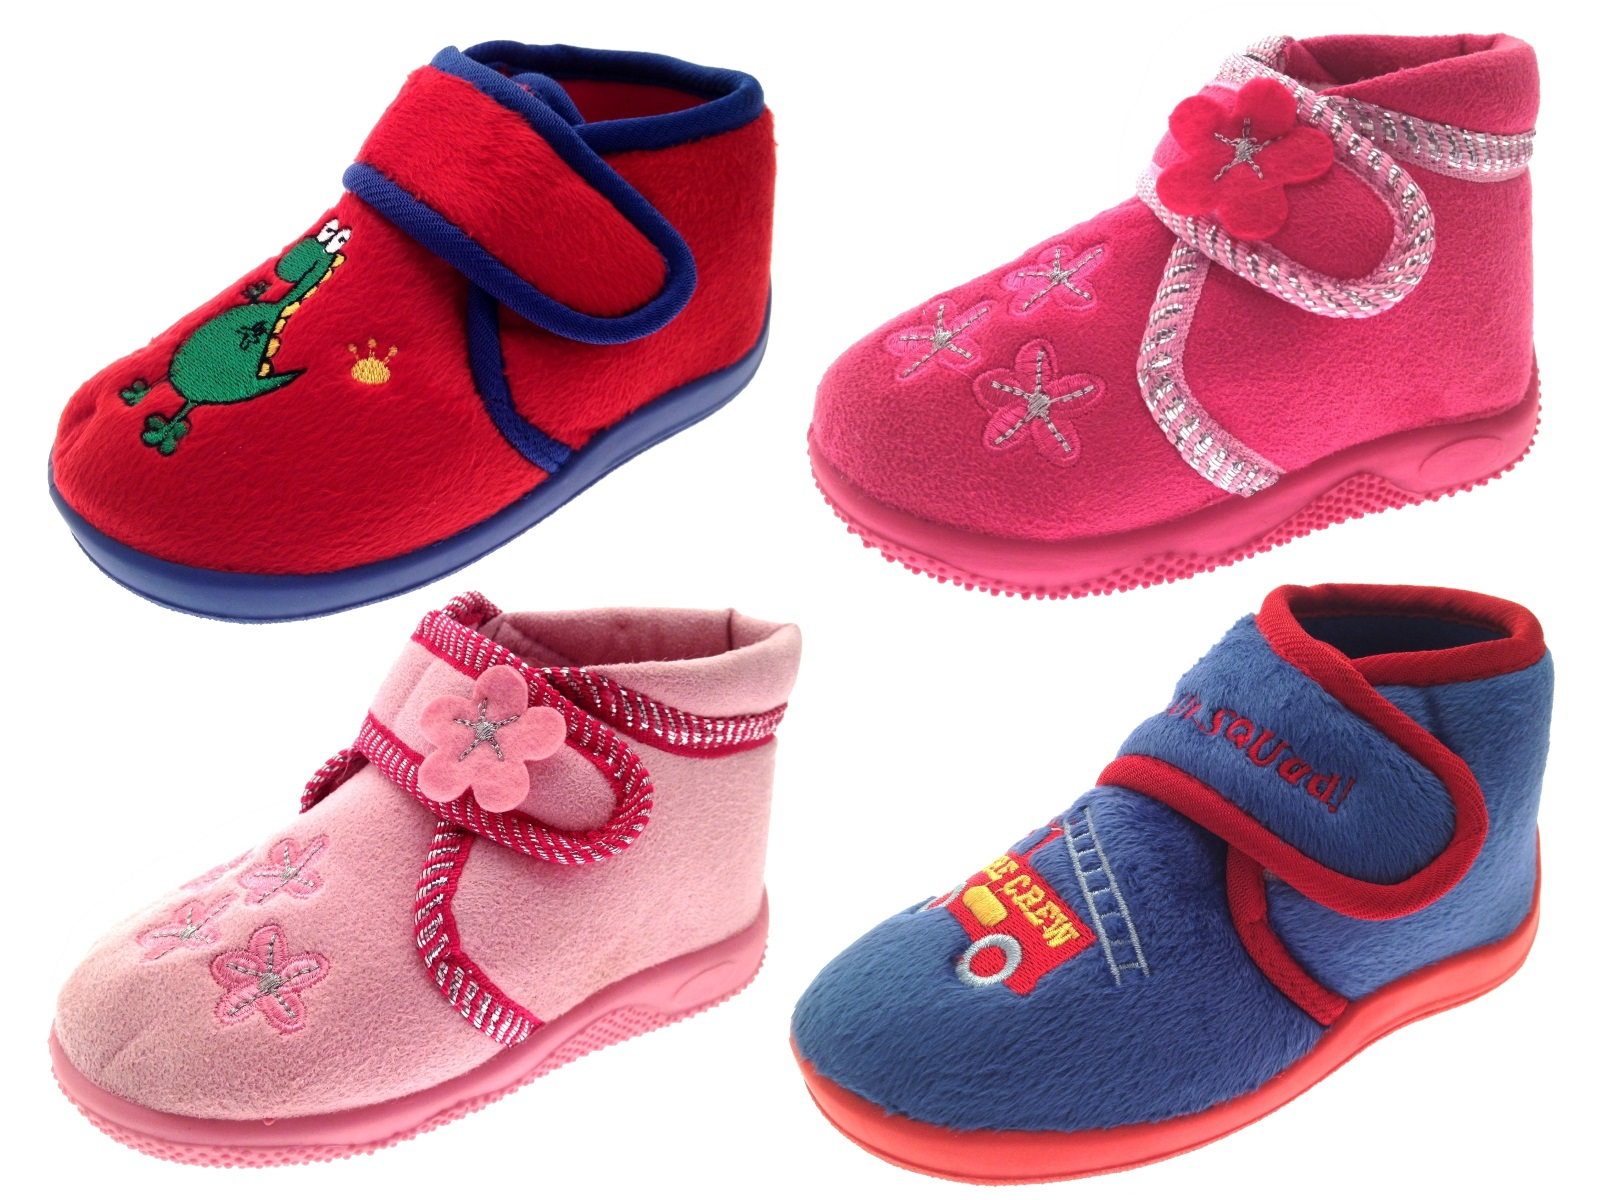 Estamico toddler home slippers are made with rubber sole and warm plush SITAILE Cute Home Shoes, Kids Fur Lined Indoor House Slipper Bunny Warm Winter Home Slippers Girls(Toddler/Little Kid) by SITAILE. $ - $ $ 12 $ 13 99 Prime. FREE Shipping on eligible orders.